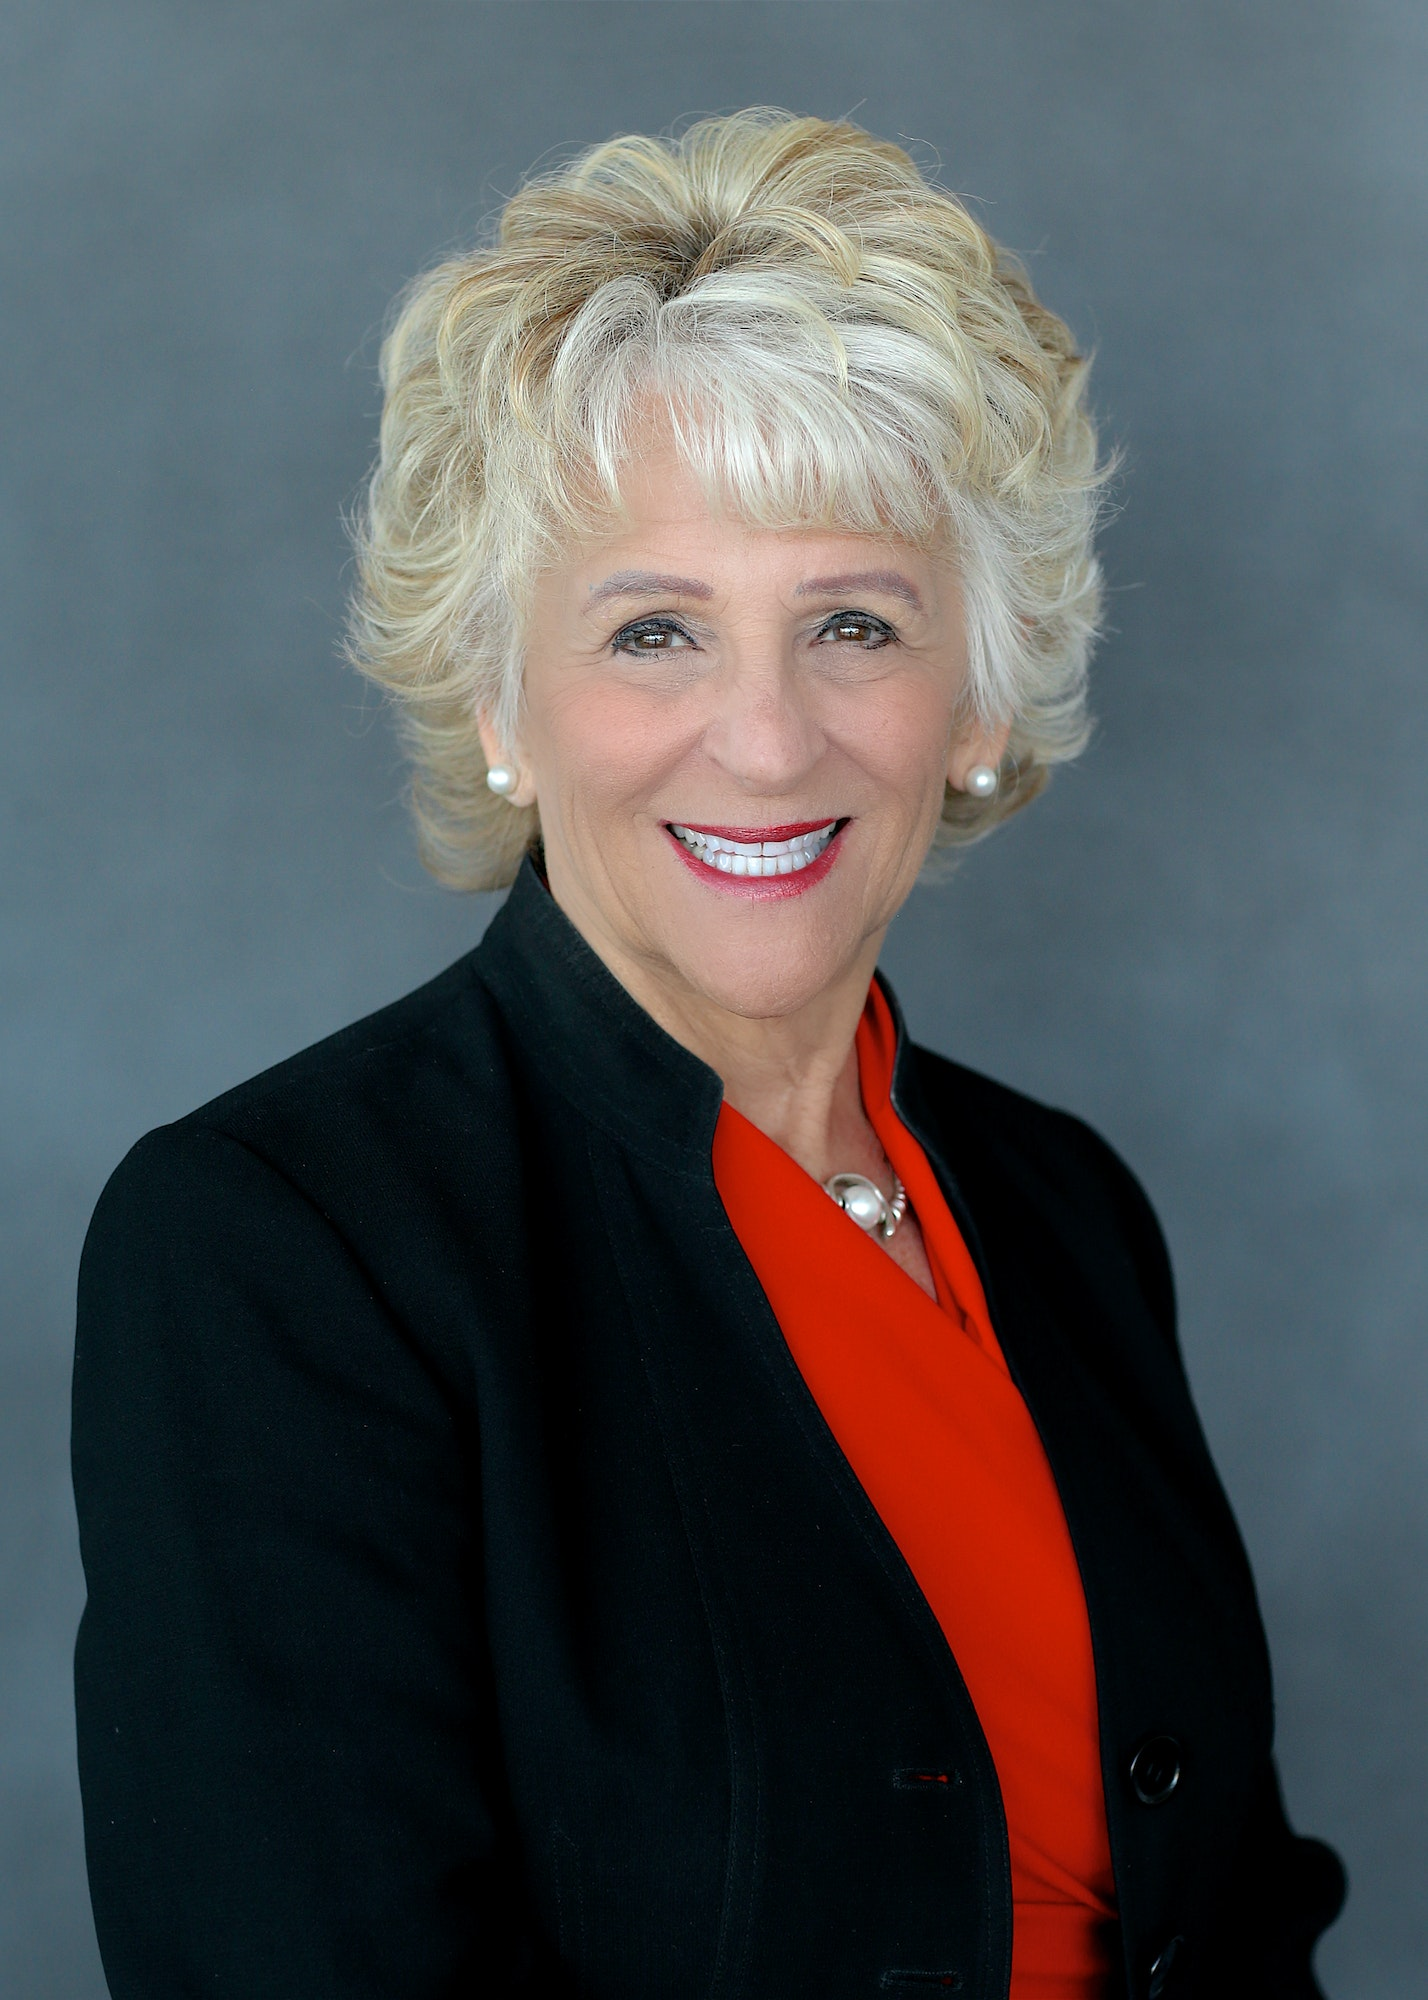 Newport Beach Trustee, Joy Brenner